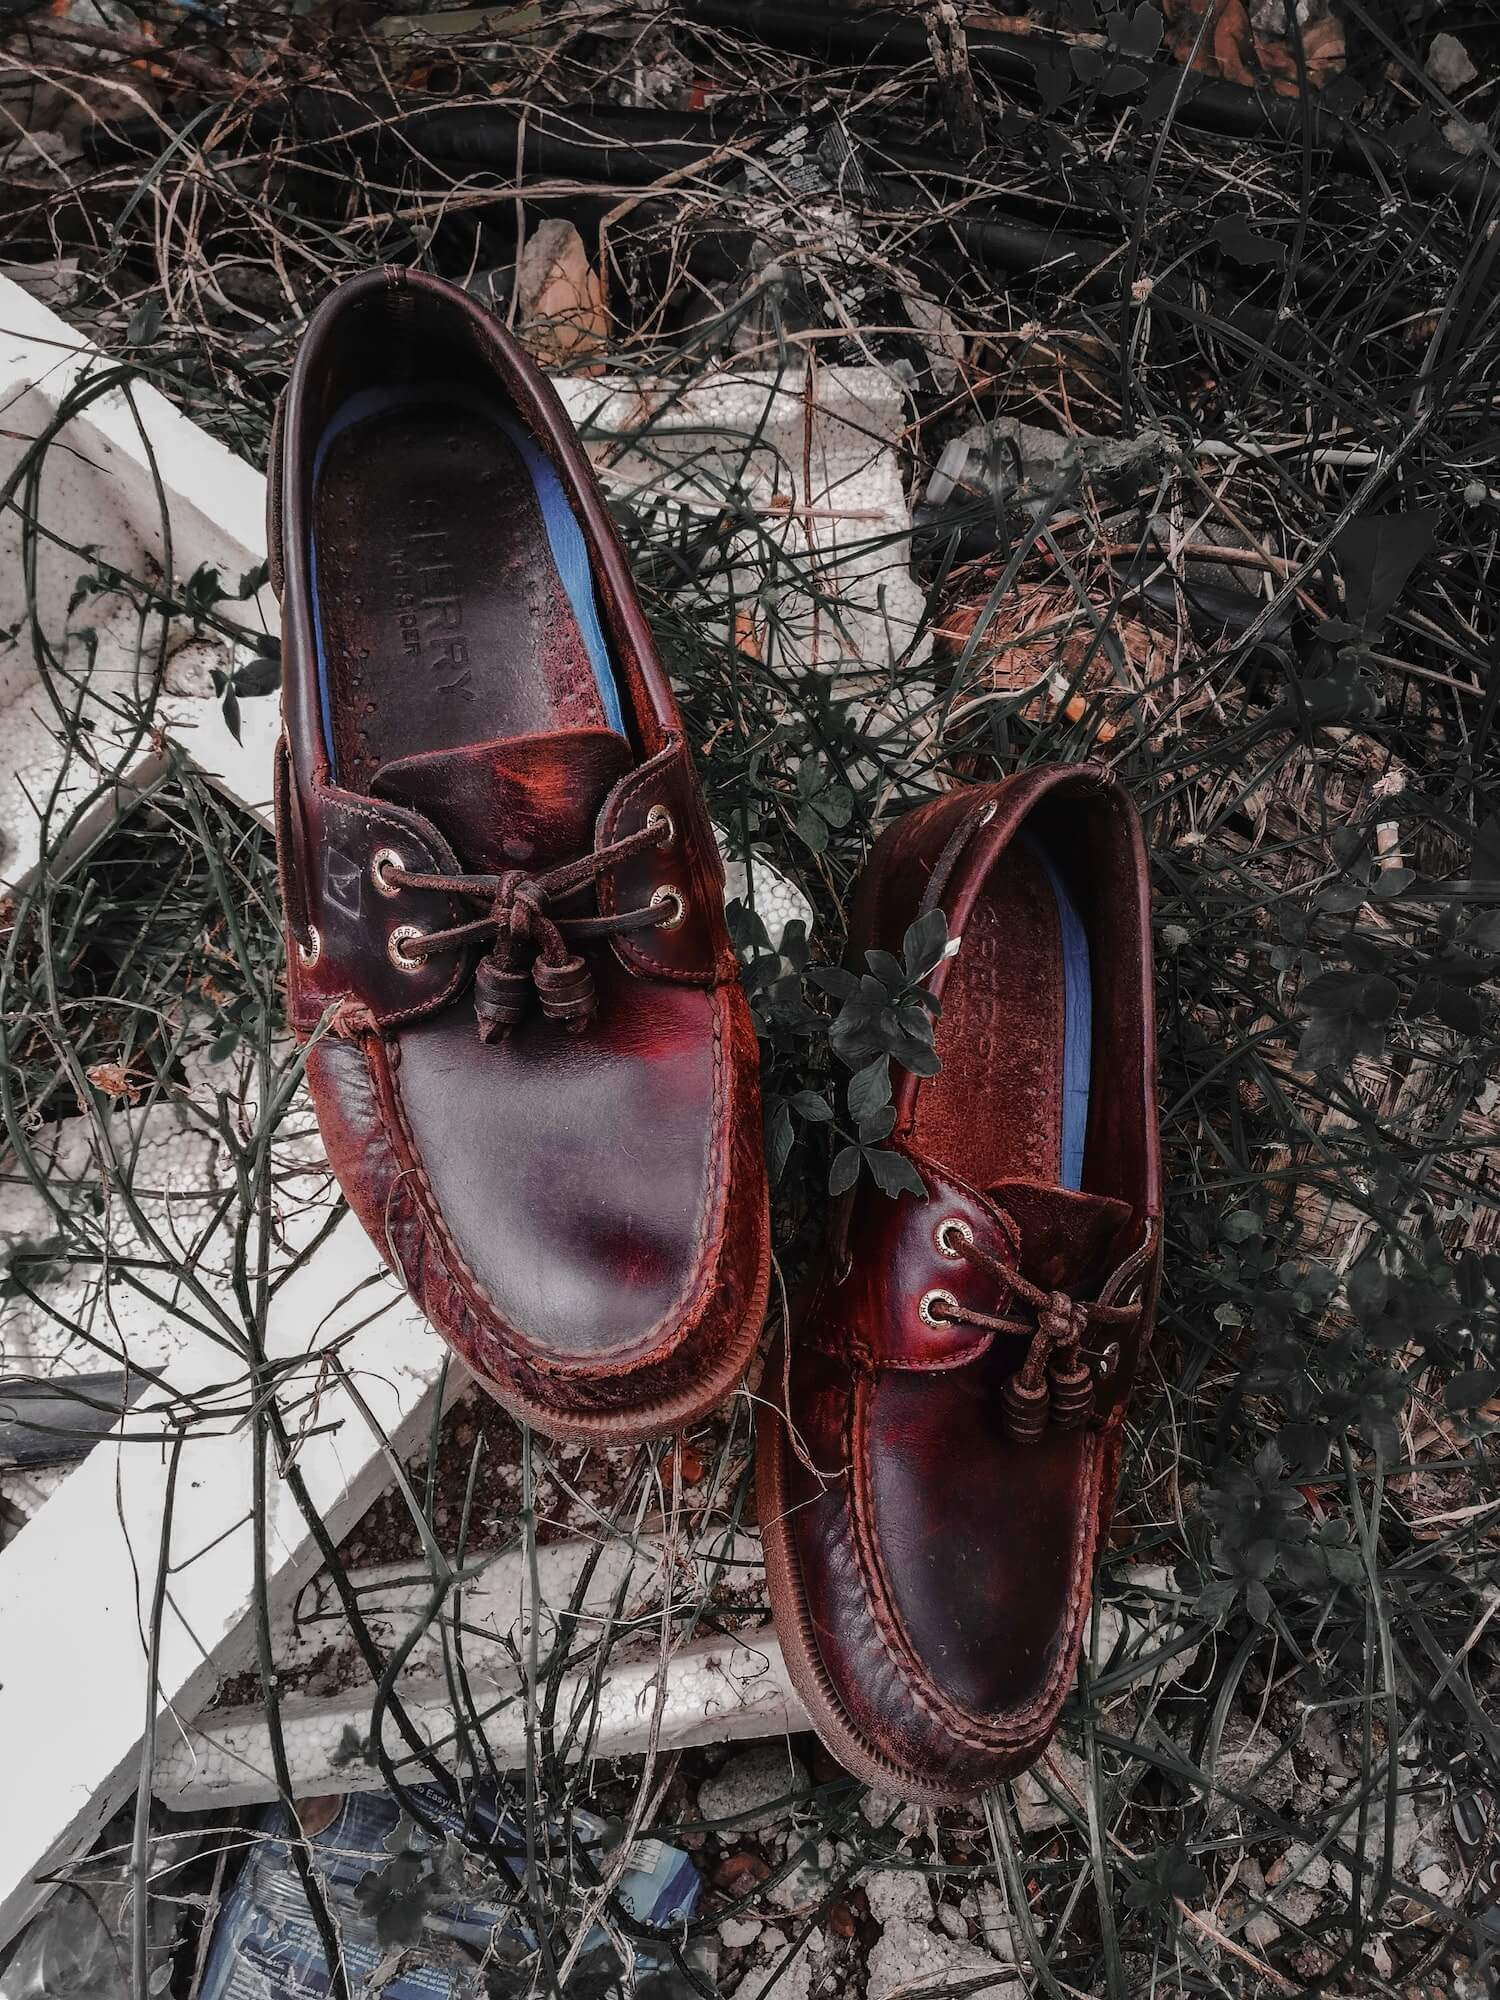 Rugged Brown Leather Loafers Sitting on Twigs